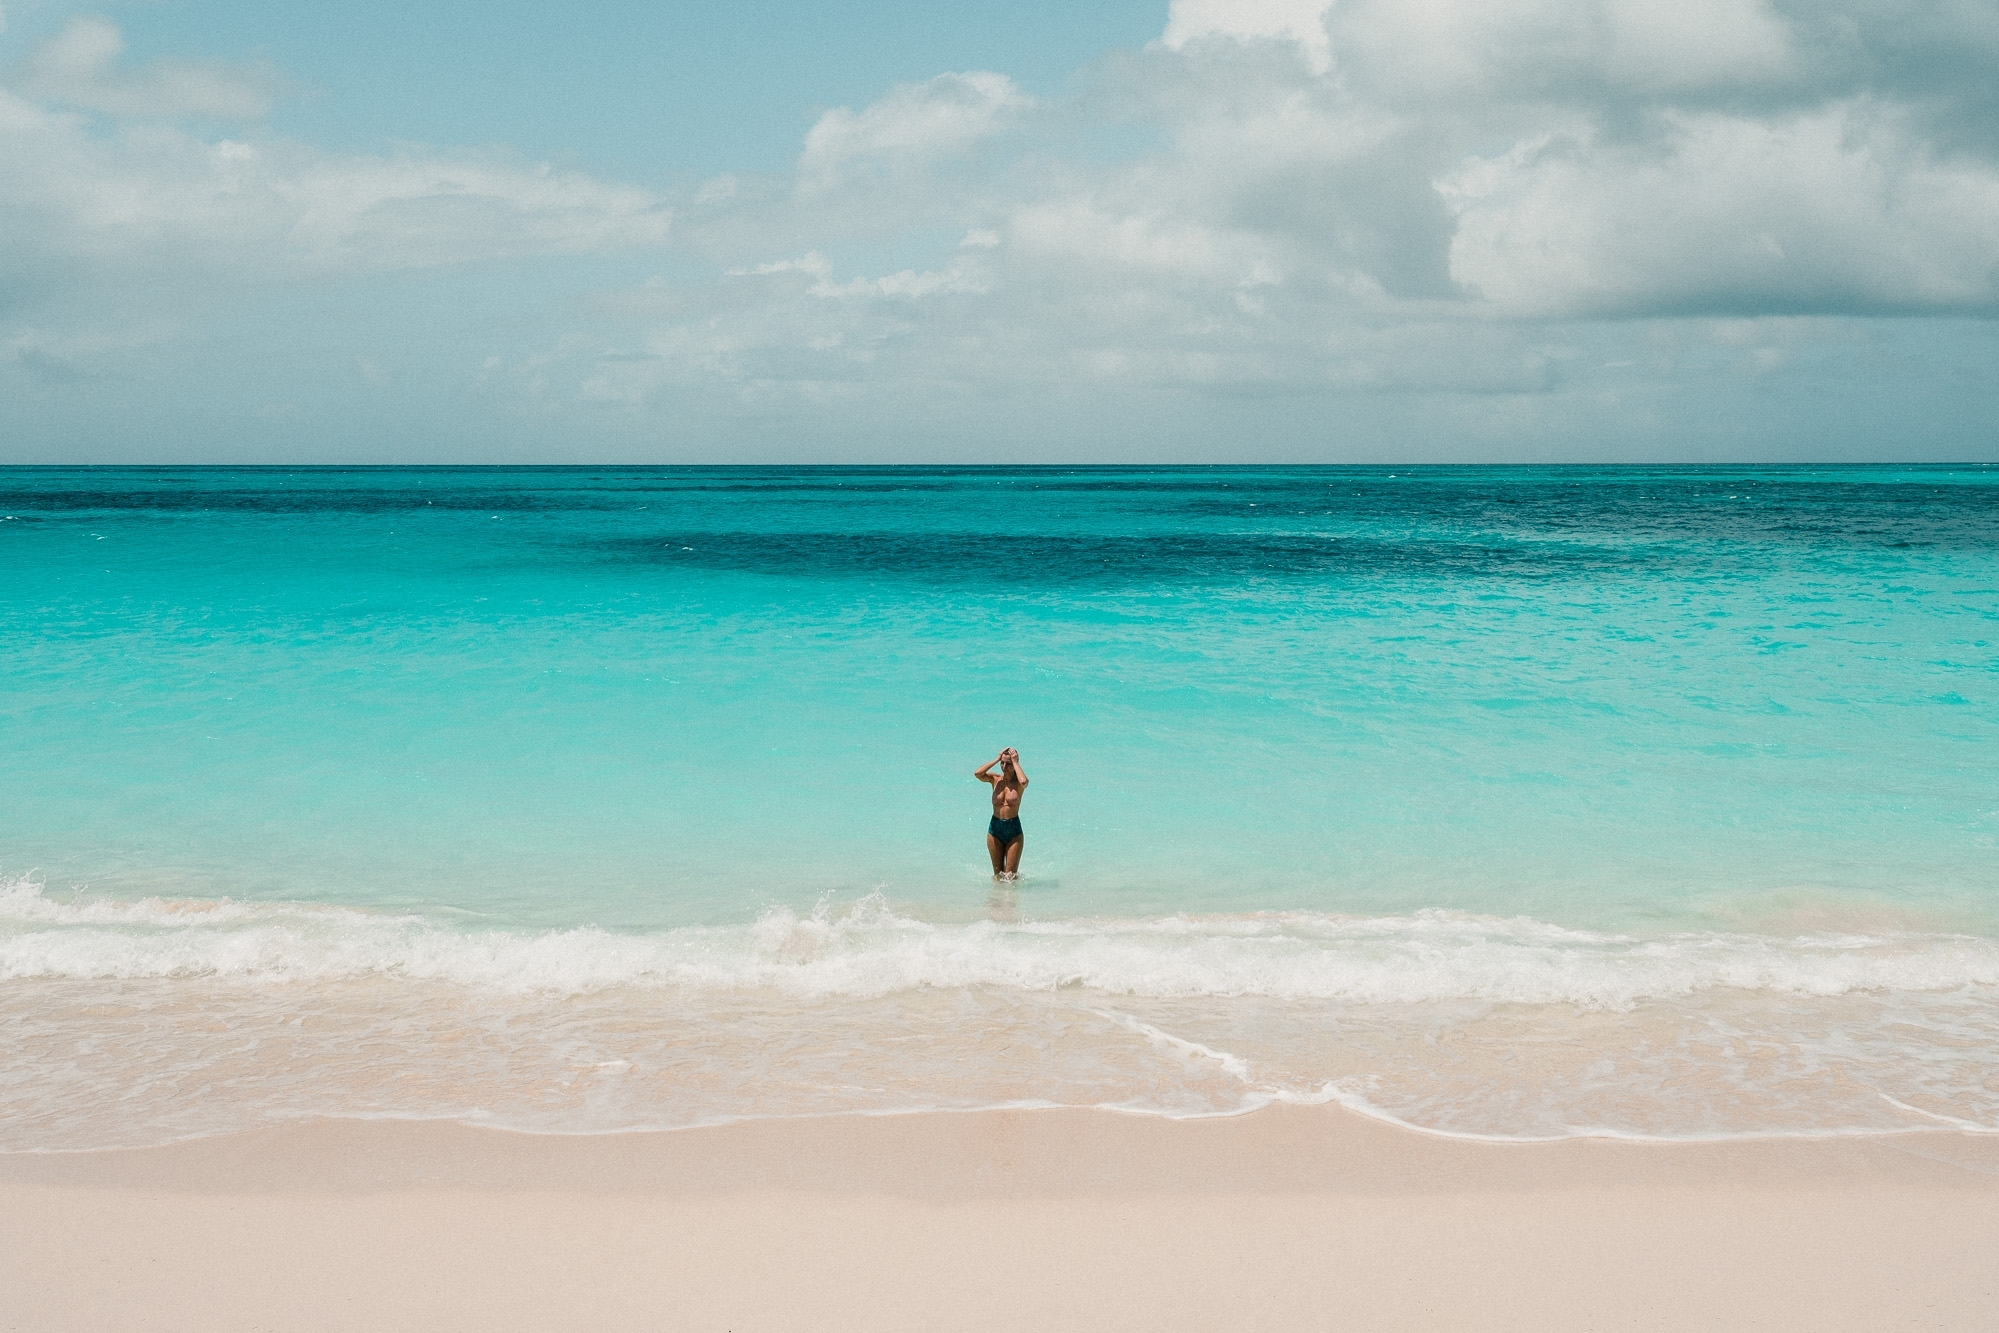 The Complete Nassau, Bahamas Travel Guide - Find Us Lost pertaining to Travel Guide To Nassau Bahamas